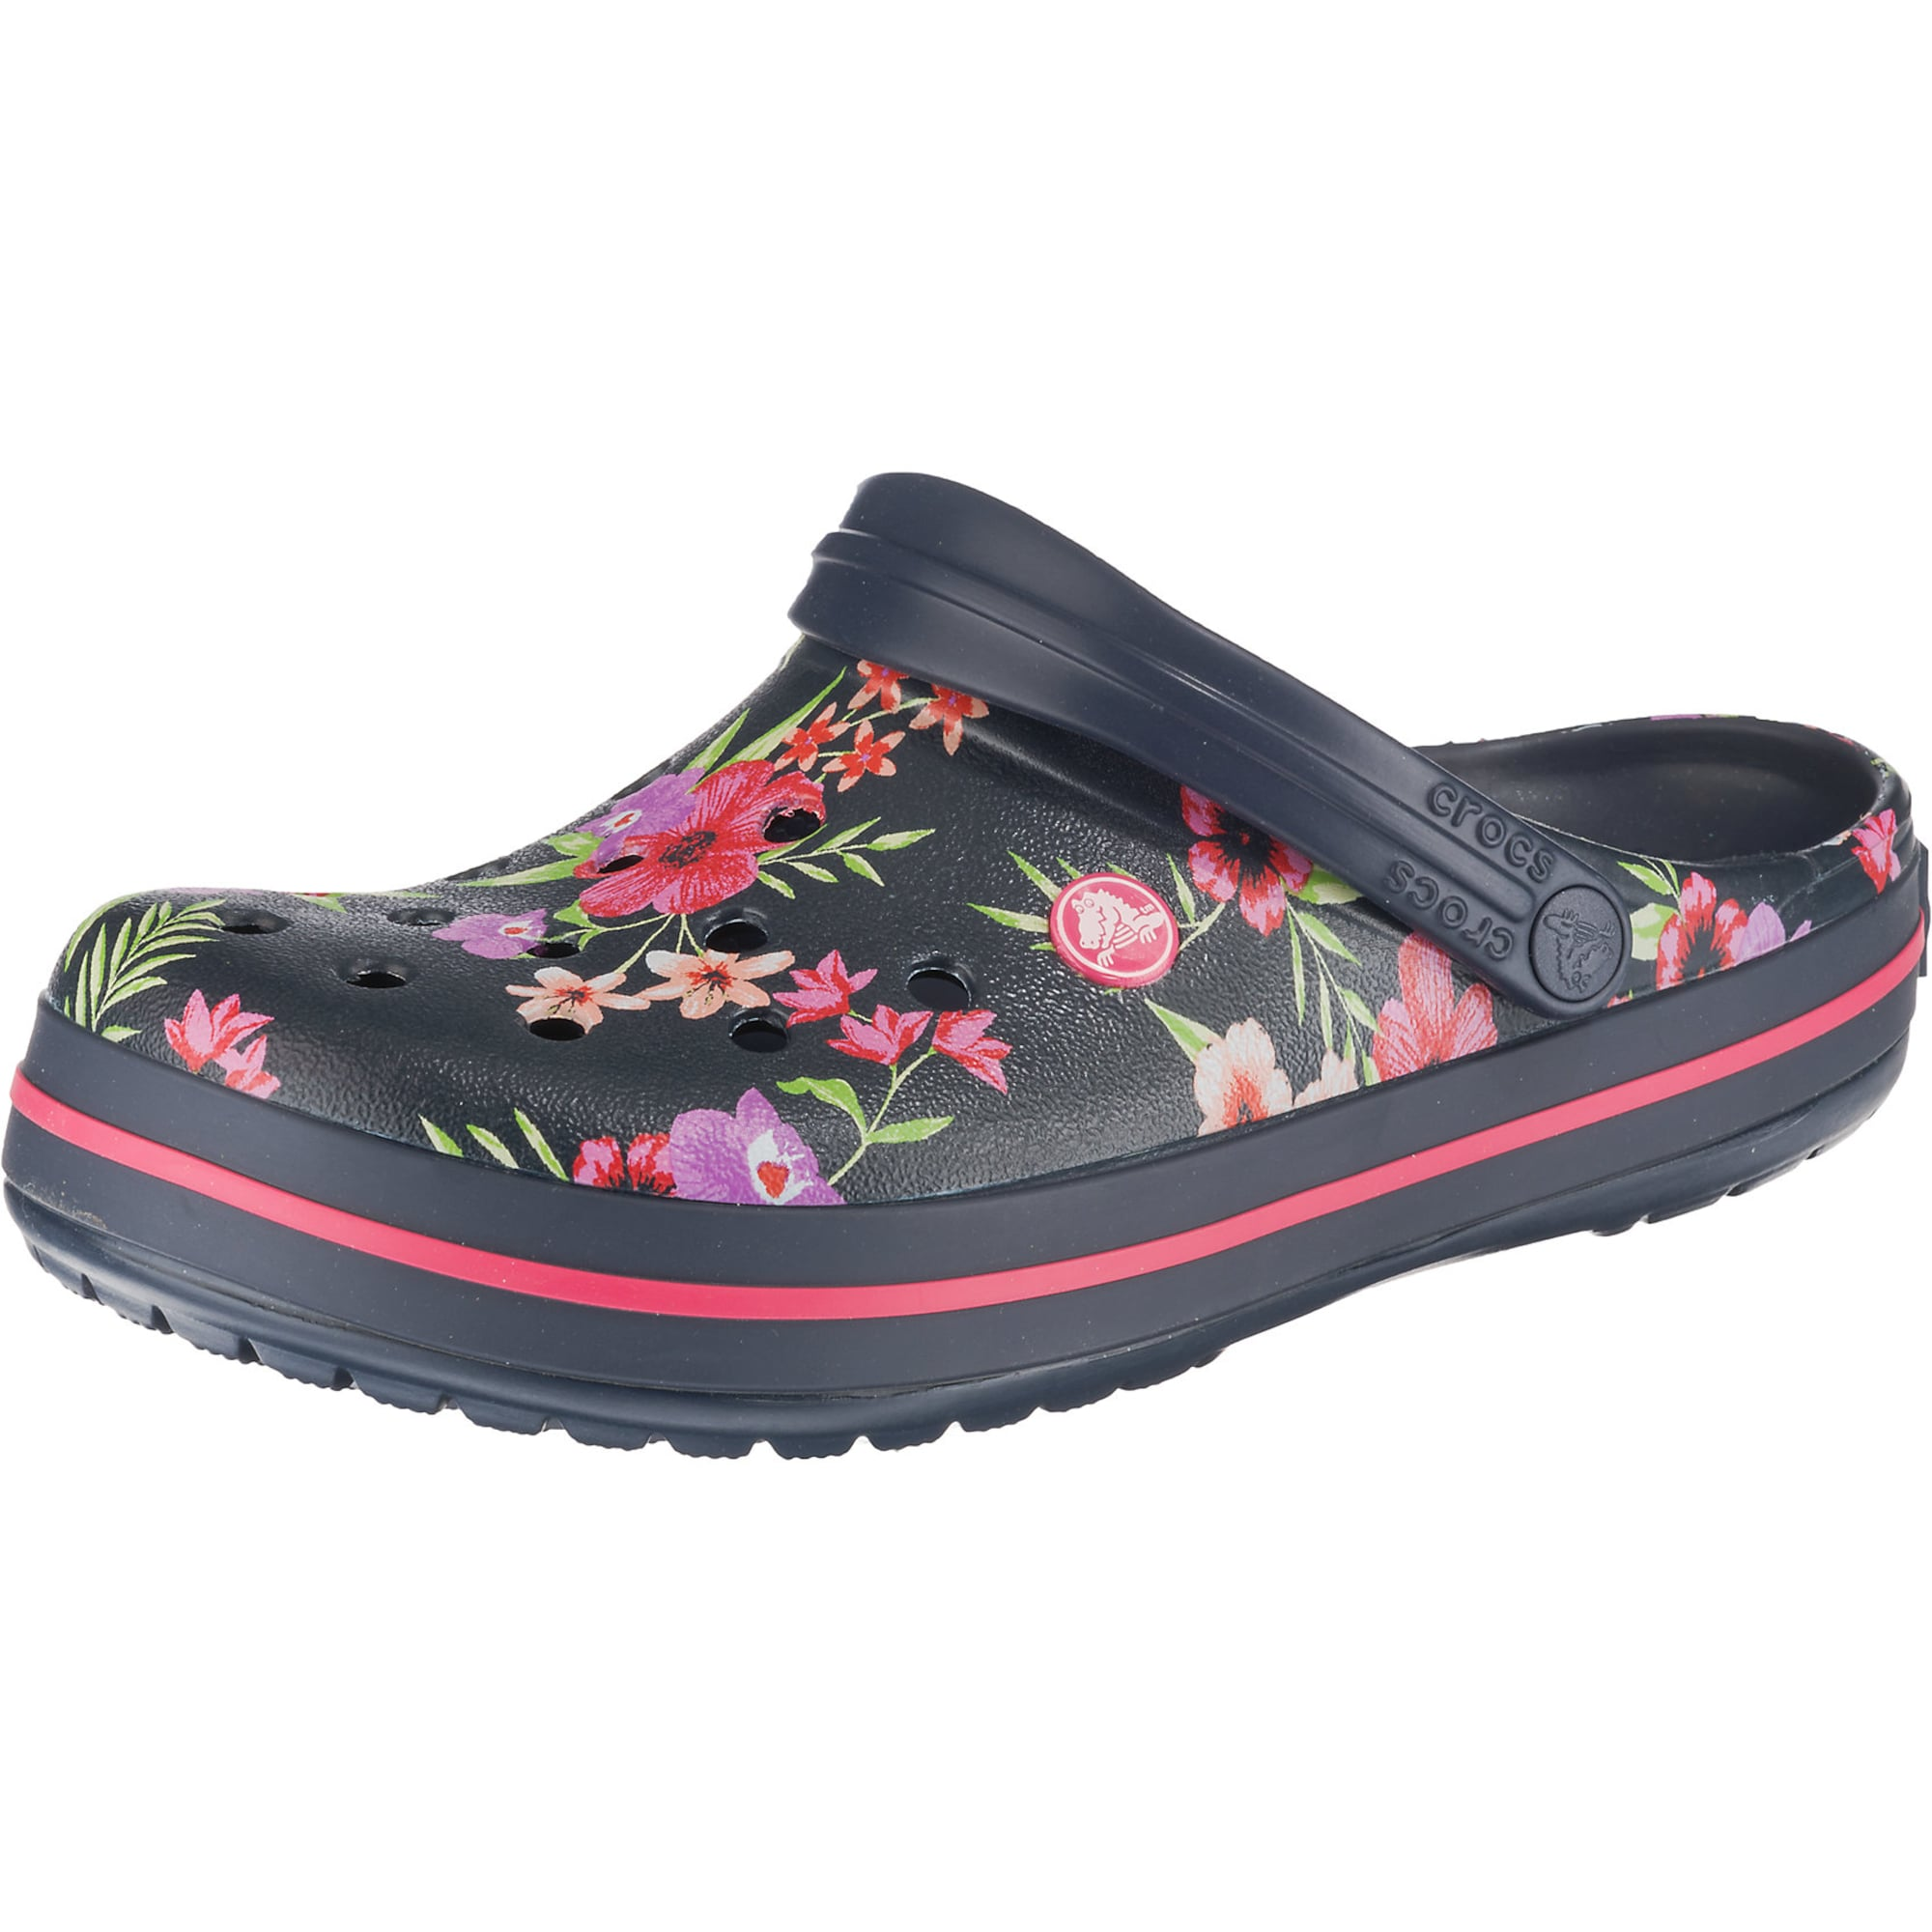 Clogs | Schuhe > Clogs & Pantoletten > Clogs | Crocs